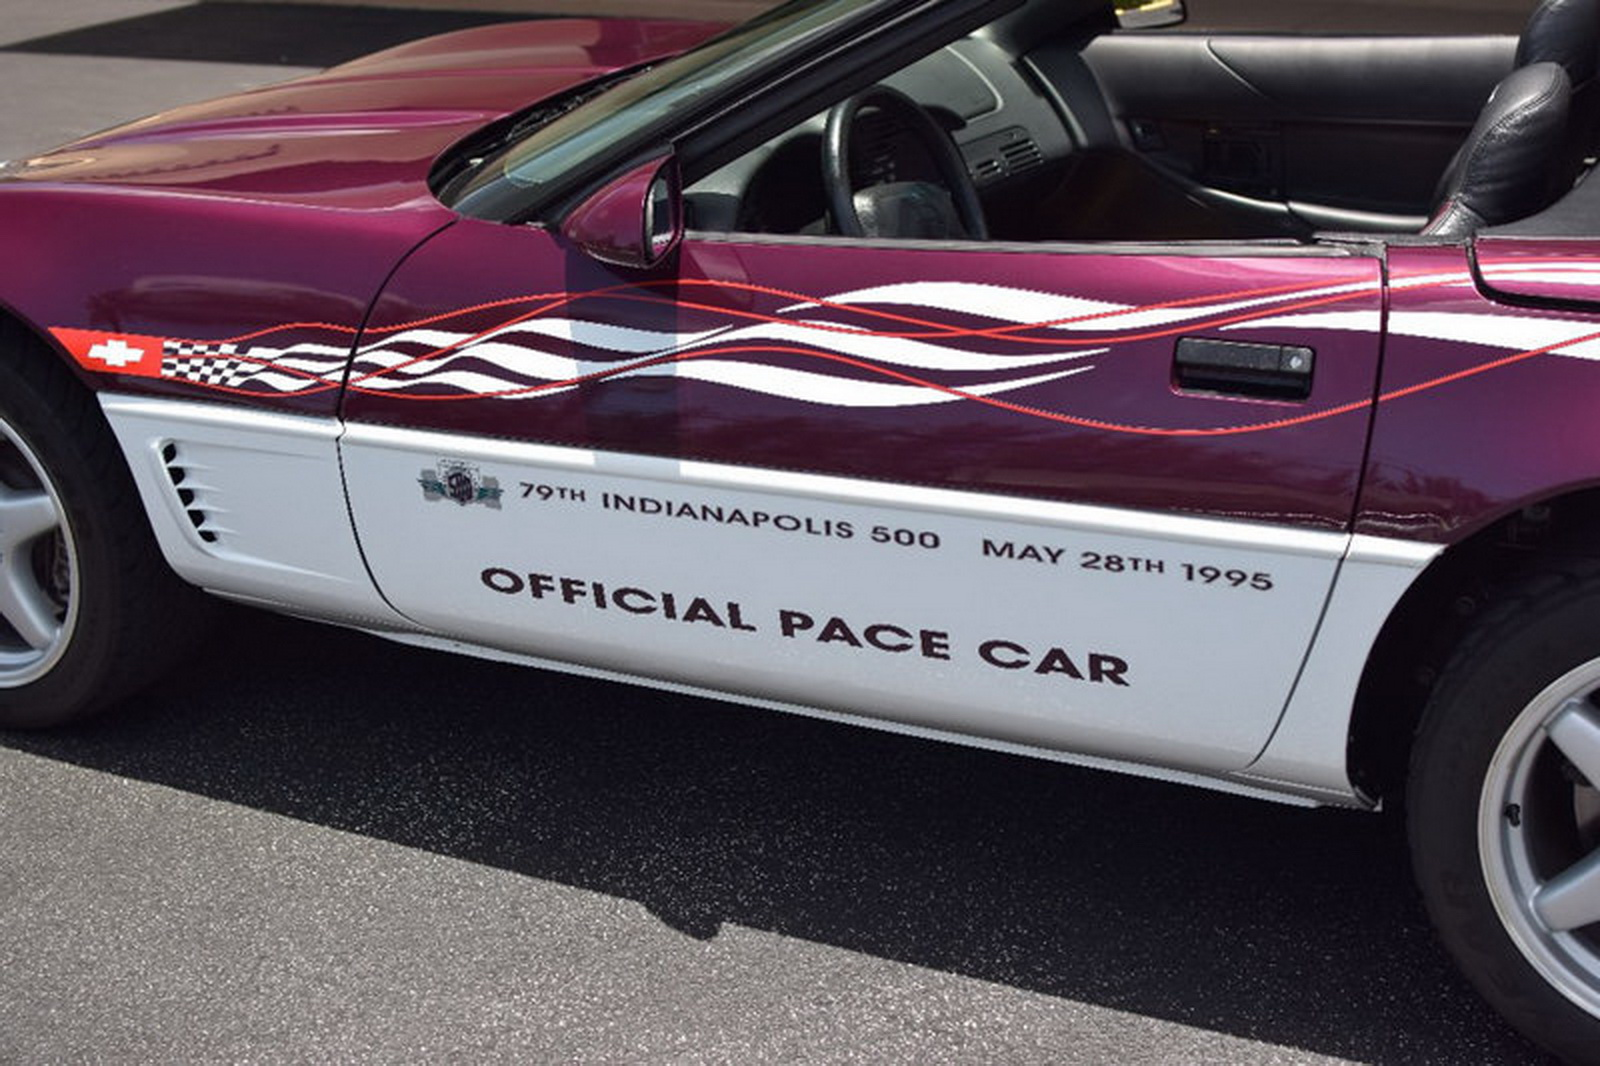 2017 Chevrolet Corvette Indy 500 Pace Car photo - 3